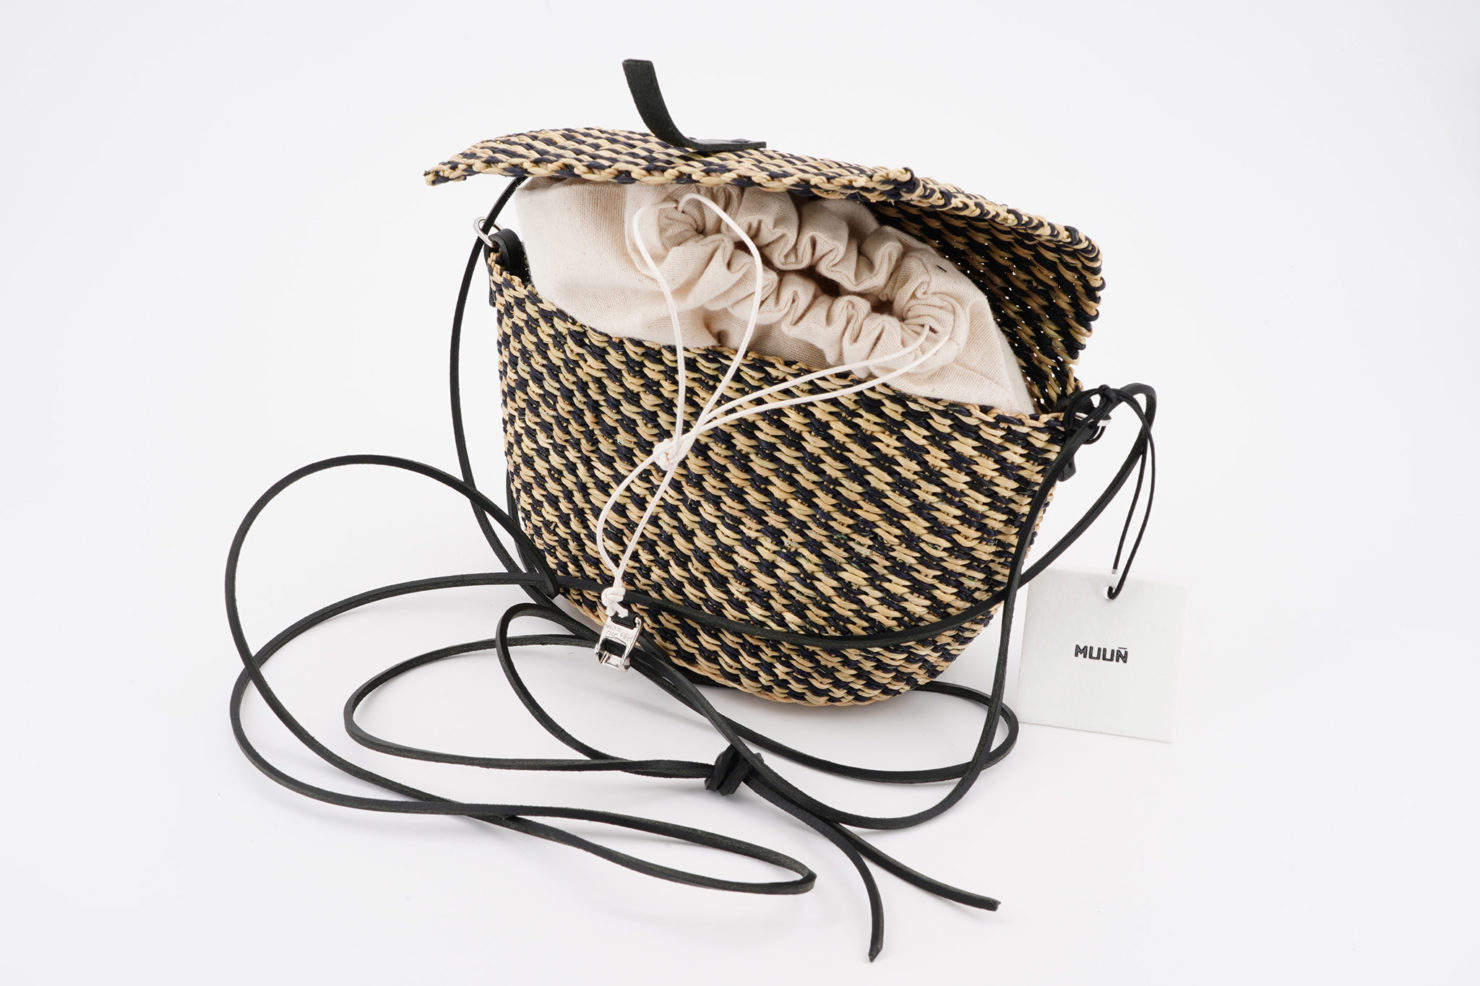 MUUN FILLE VICHY COTTON STRAW BAG WITH REMOVABLE POUCH OPEN